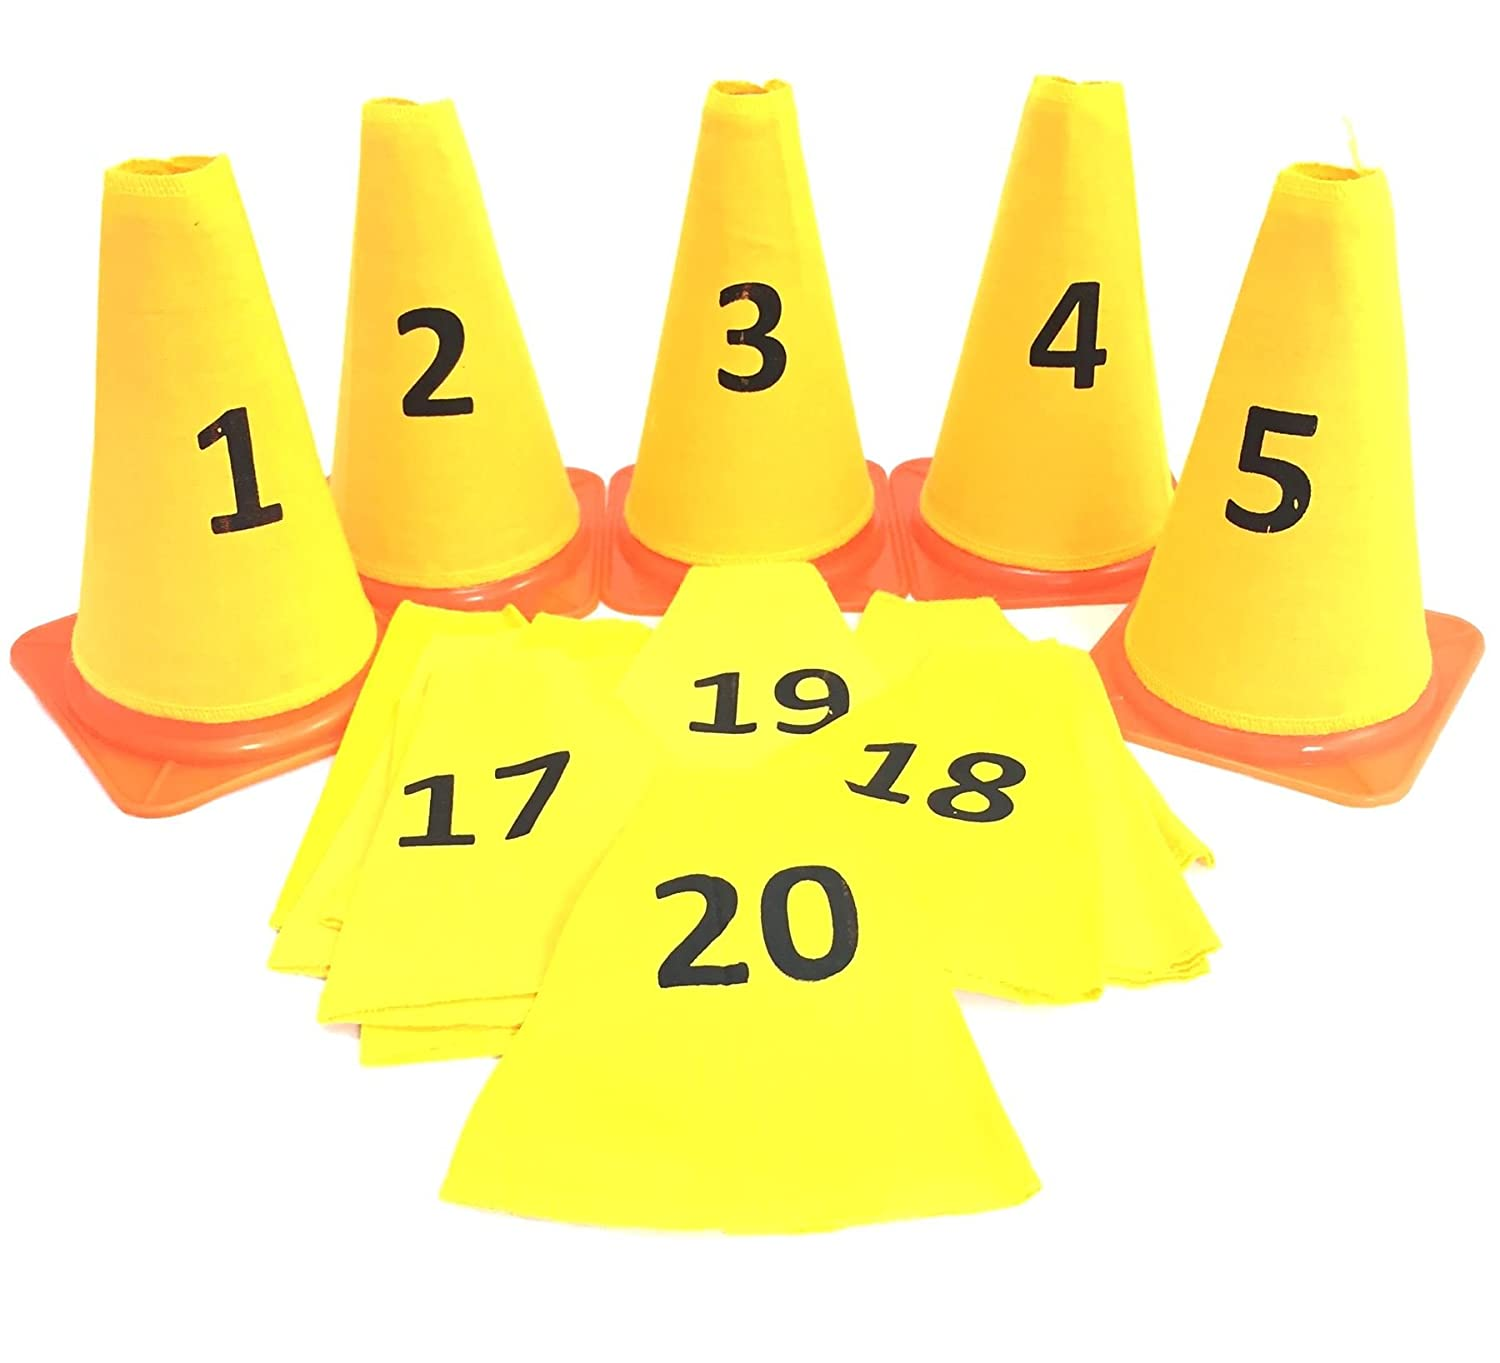 Number Cone sleeves (from 1 to 20) Yellow One Size Splay 60388-543